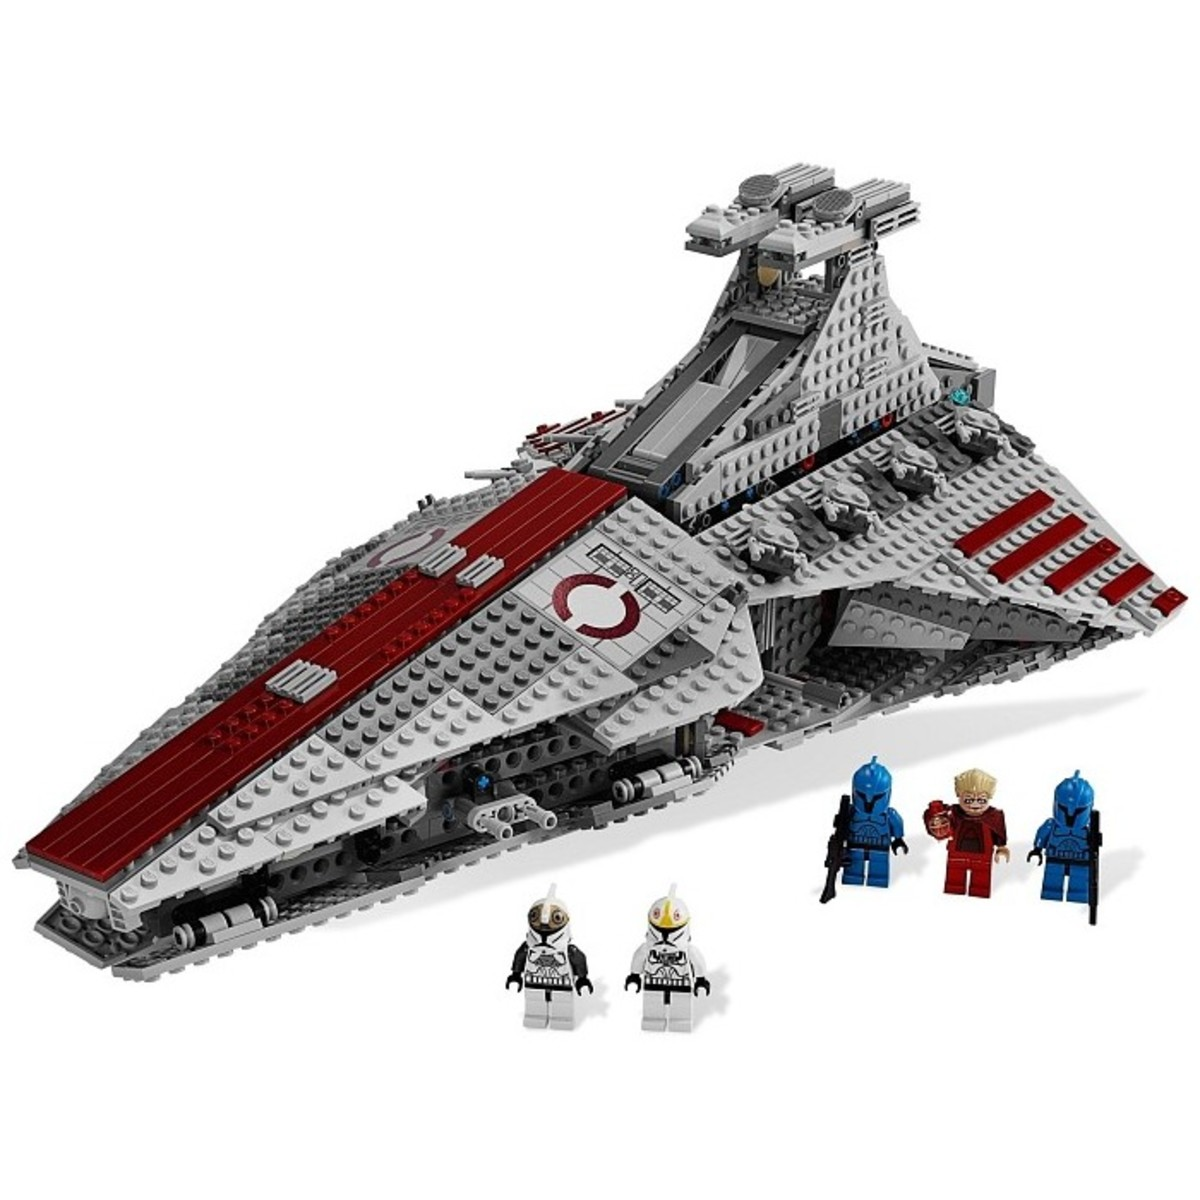 LEGO Star Wars Venator-Class Republic Attack Cruiser 8039 Assembled